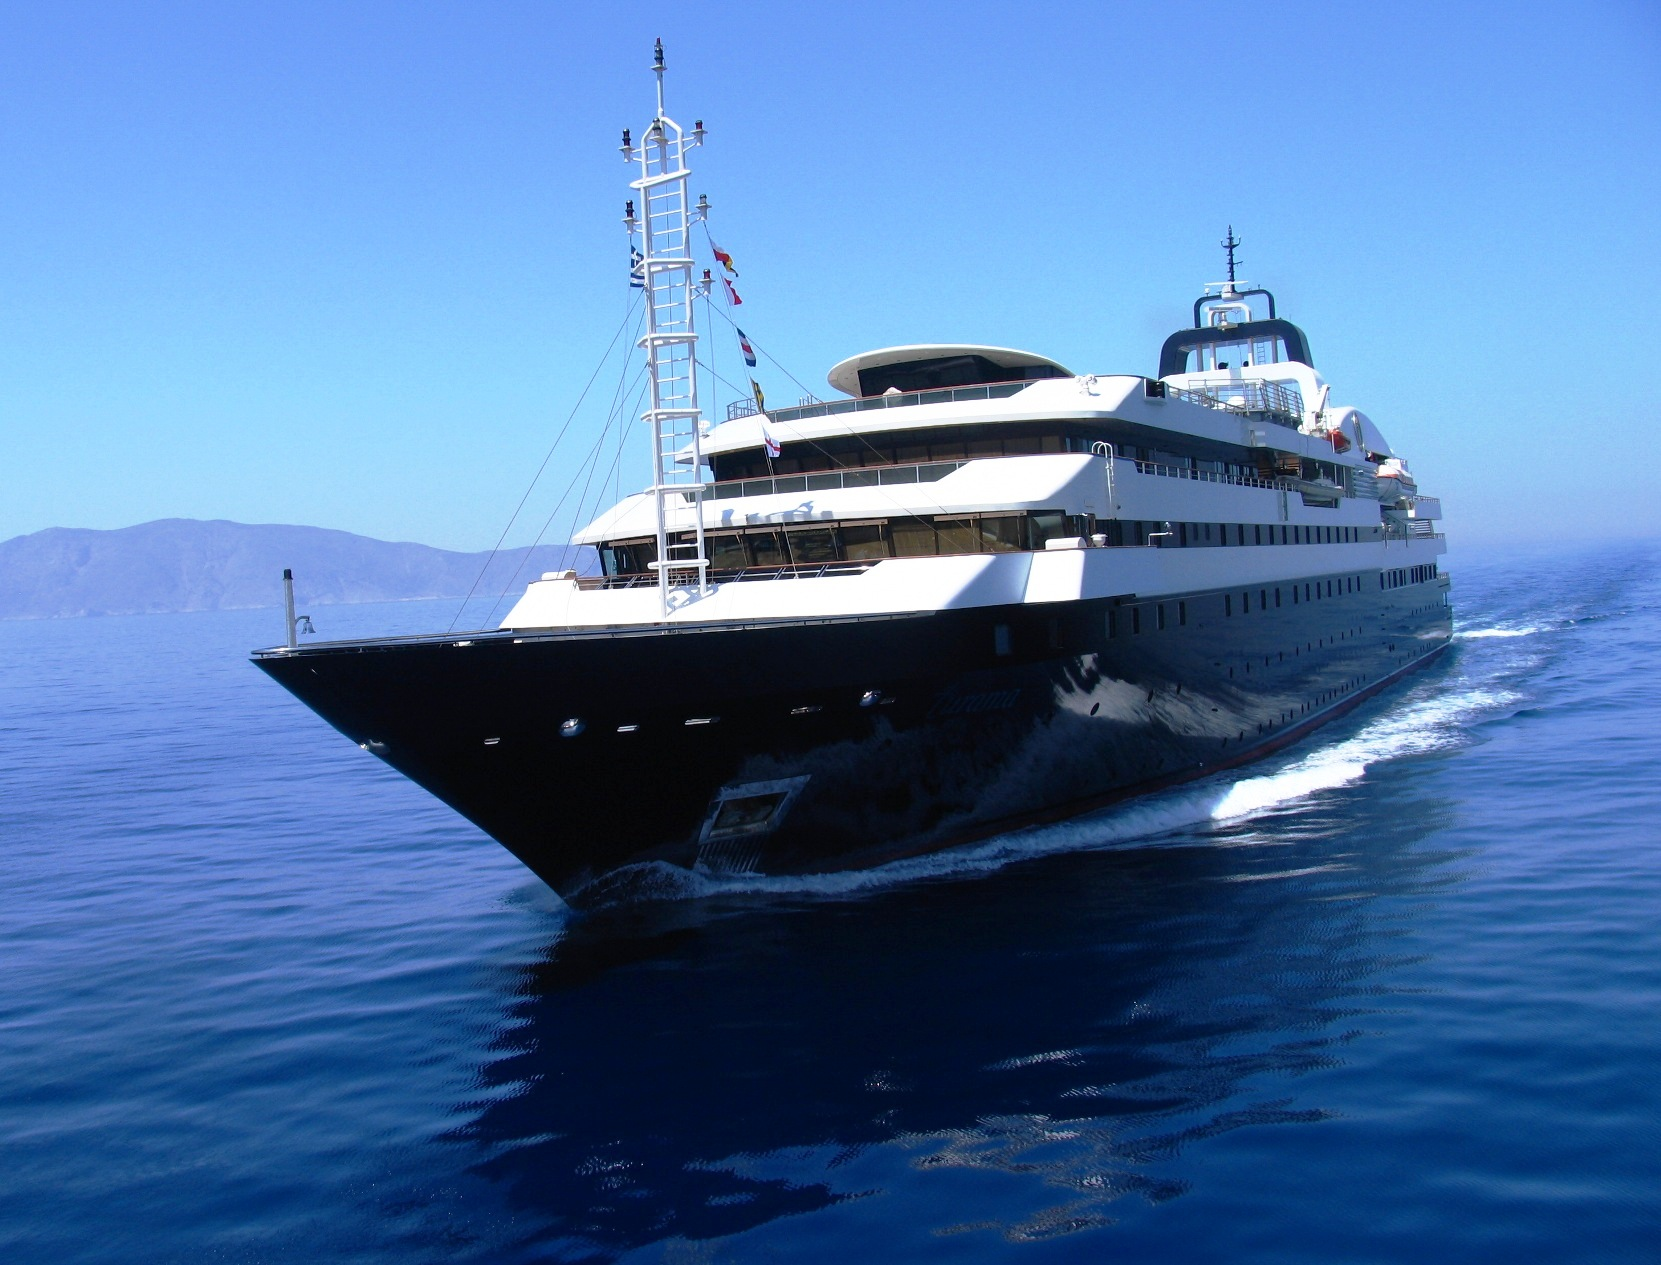 Turama Luxury Yachts luxury yachts Top 5 private luxury yachts in the world Turama Luxury Yachts